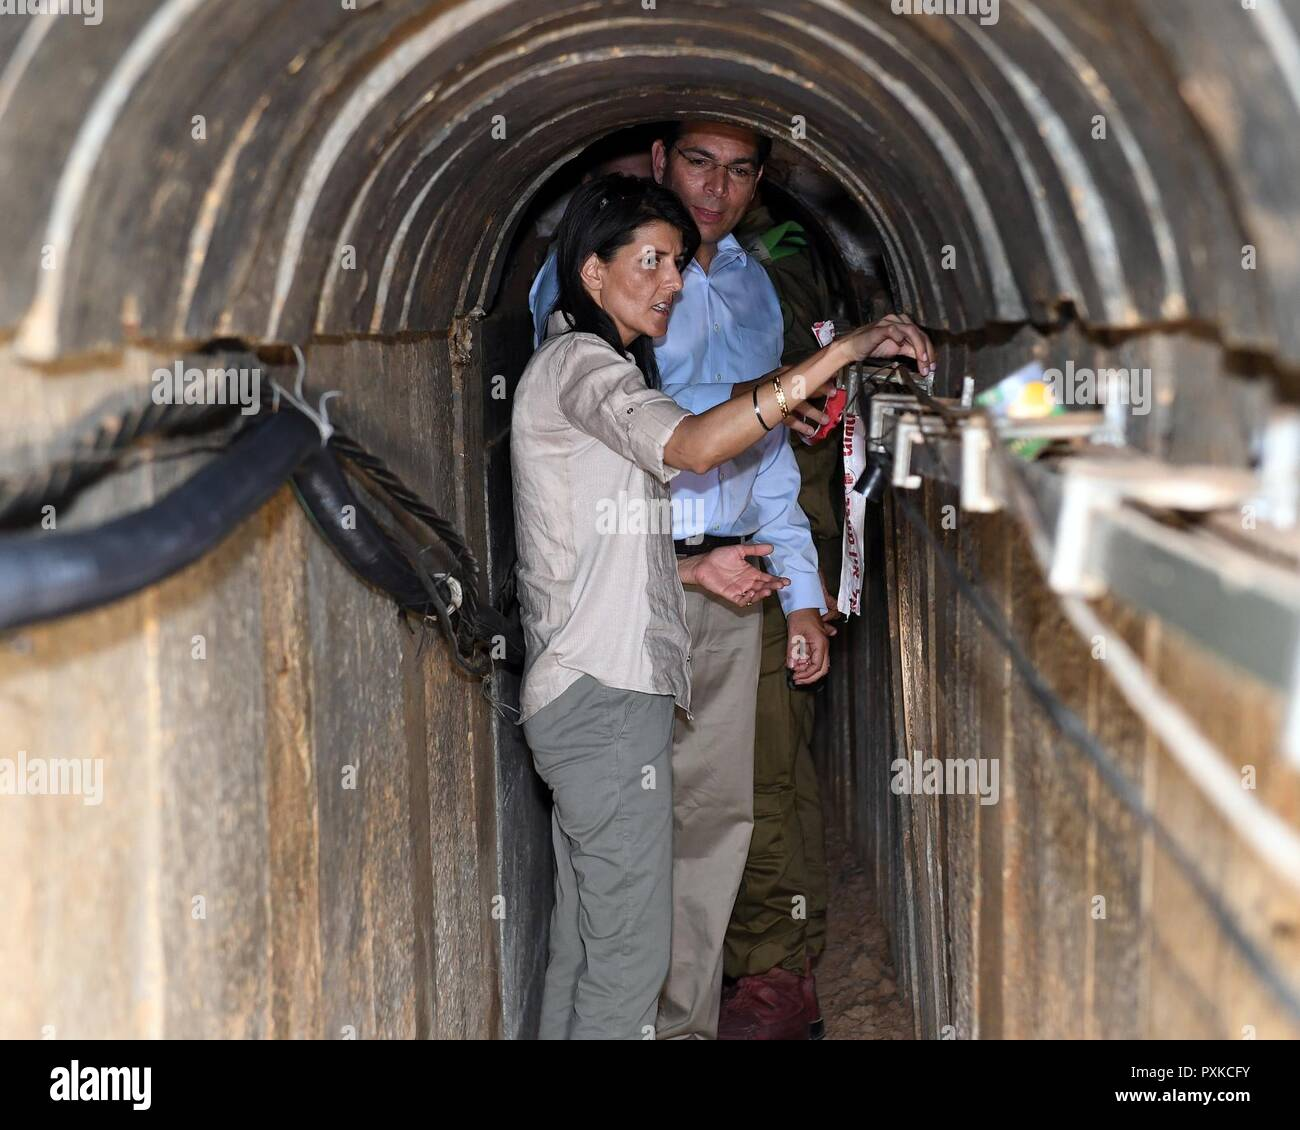 US Ambassador to the UN Nikki Haley receives briefing from BG Yehuda Fuchs and tours 'Indian Chai' terror tunnel built by Hamas. - Stock Image